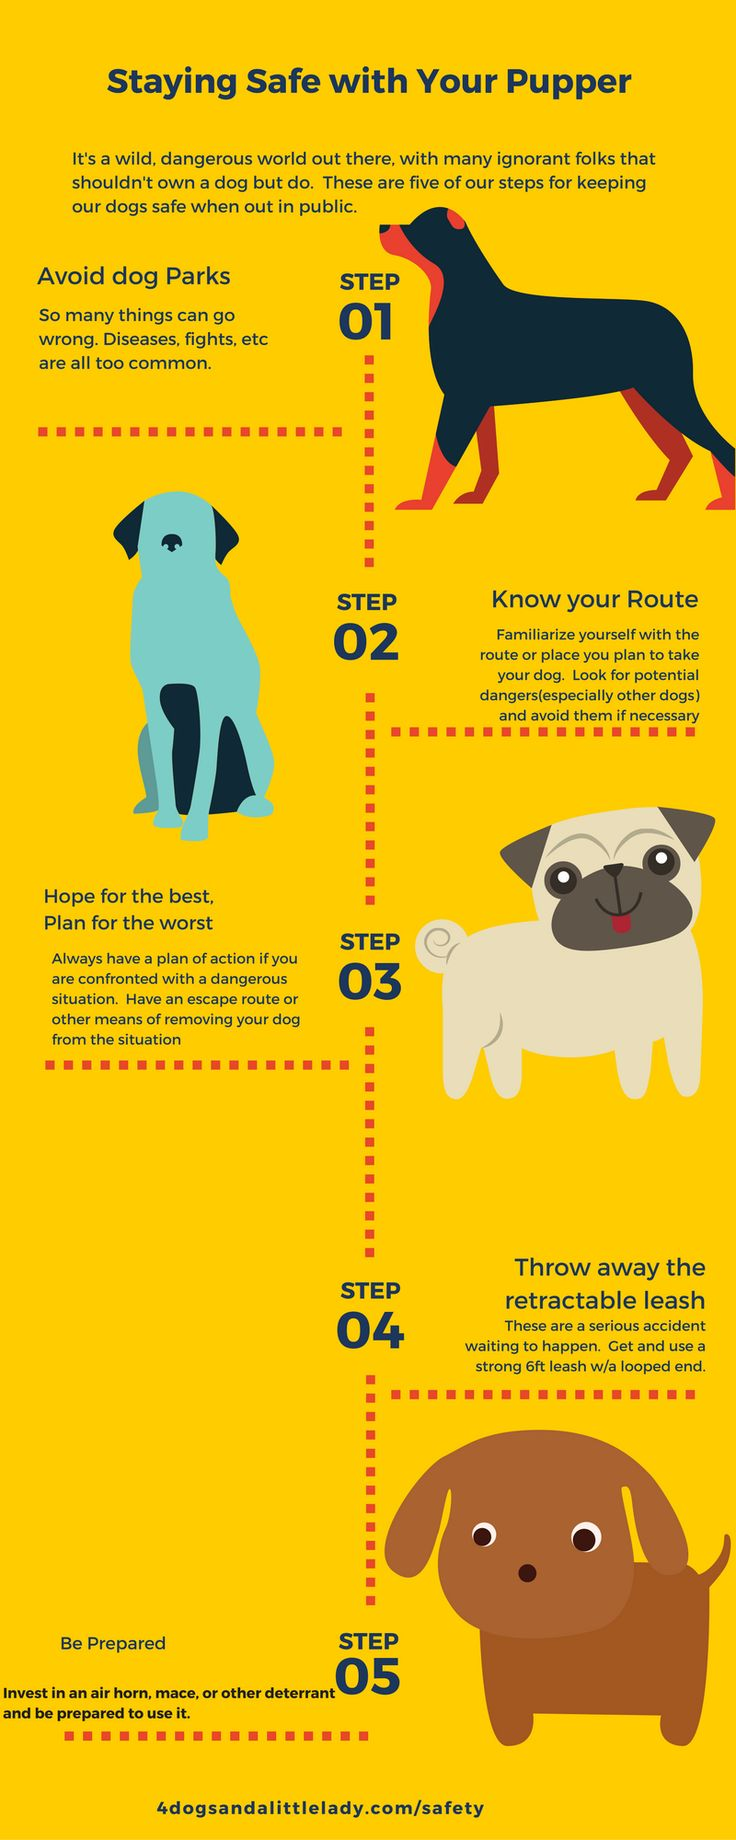 5 steps for keeping your dog safe in public